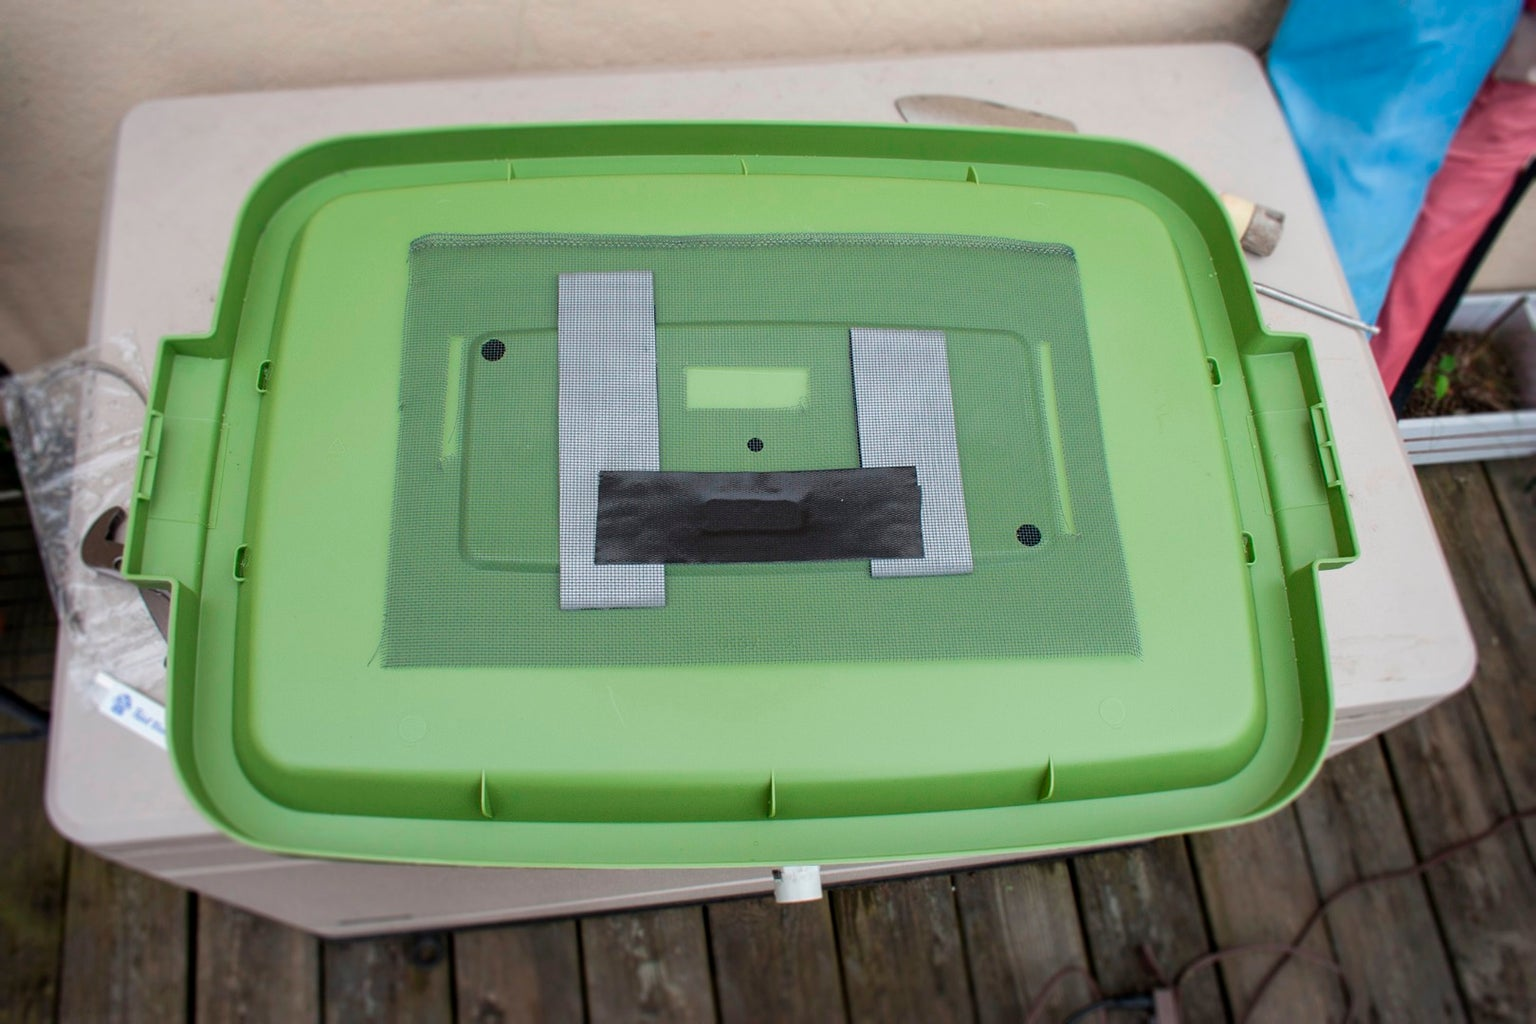 Cut Out Your Screen, and Attach It to the Under Side of the Bin Top